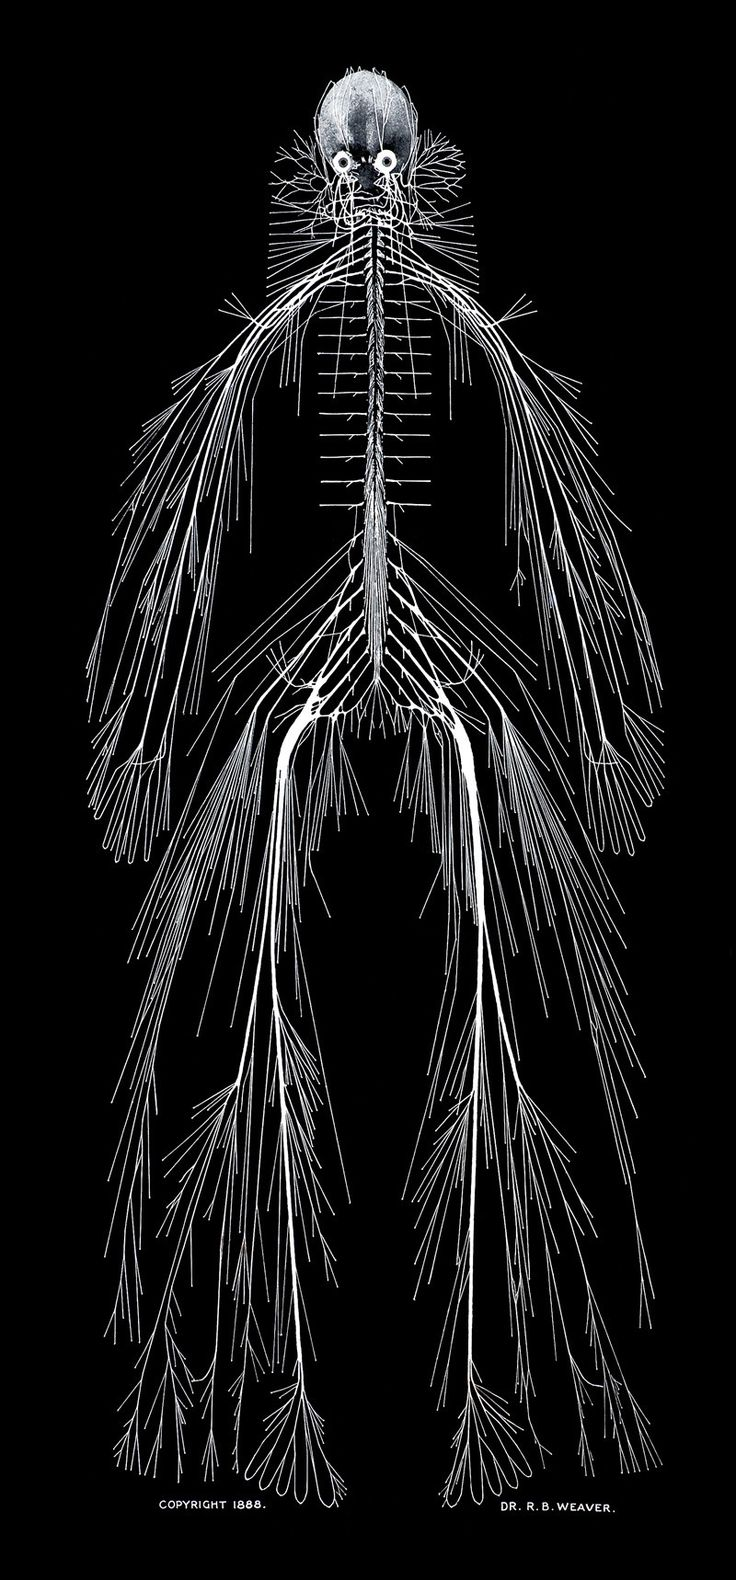 A model of the human nervous system, by Rufus Benjamin Weaver (https://pinterest.com/pin/287386019946940358/). 1888.